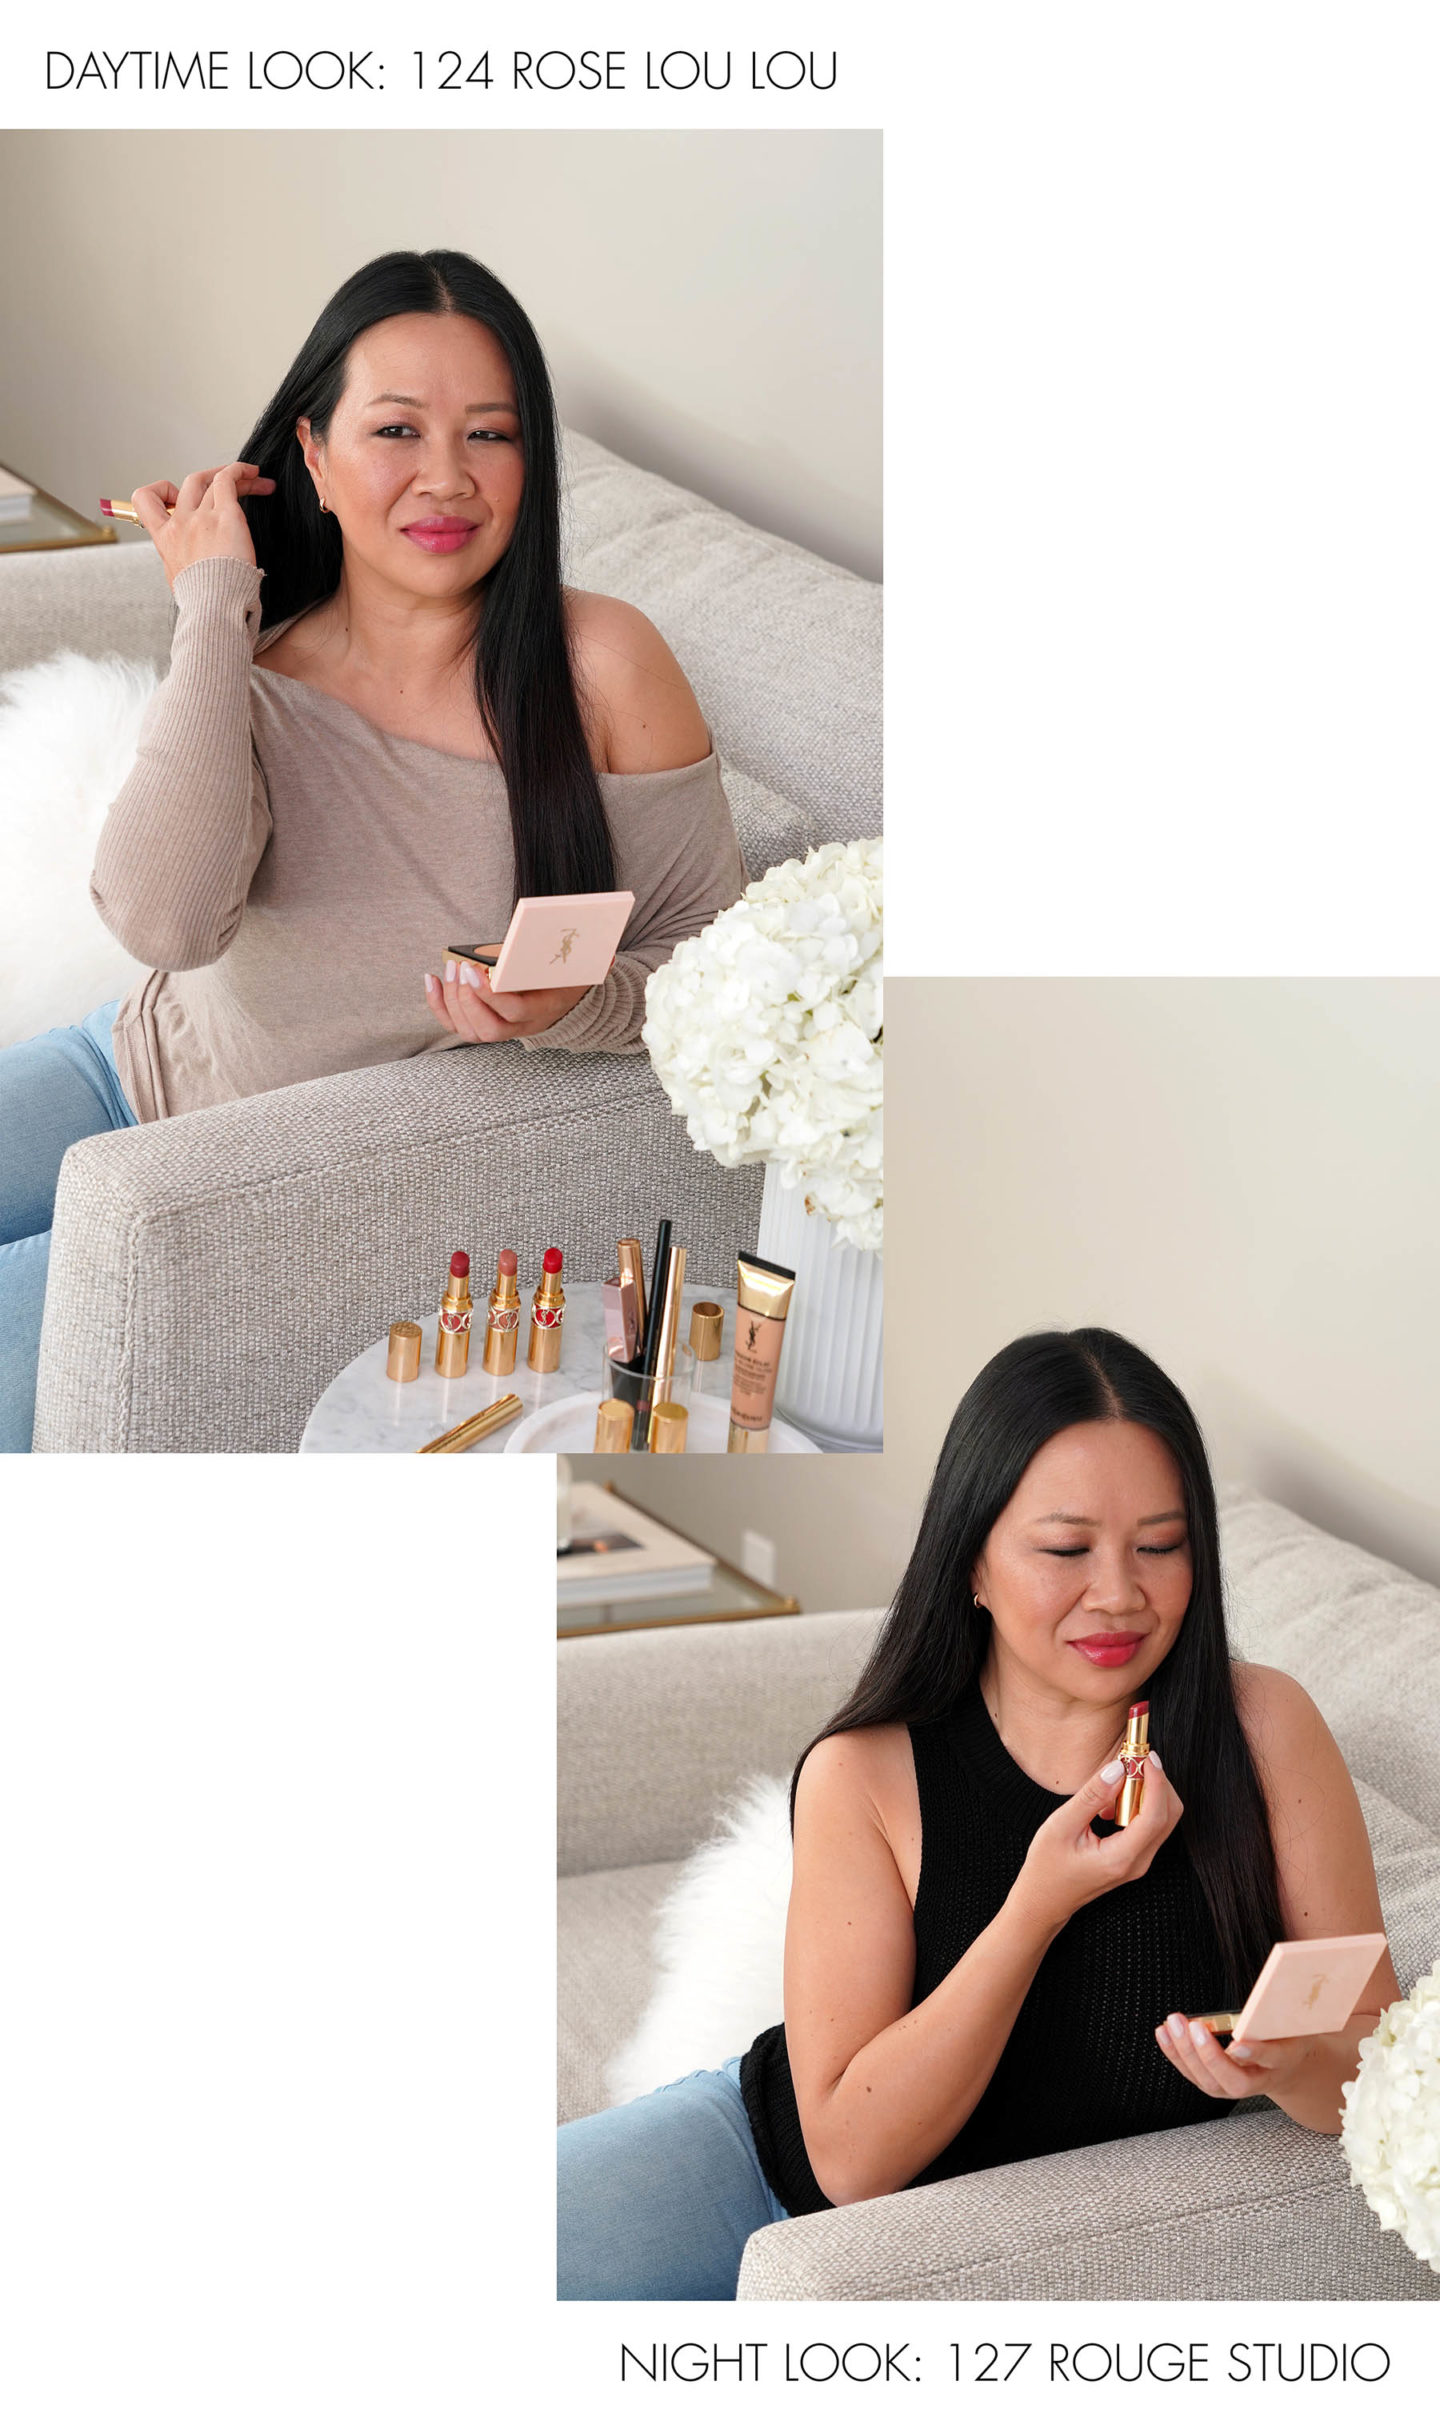 YSL Rouge Volupte Shine Day Look or Night Look